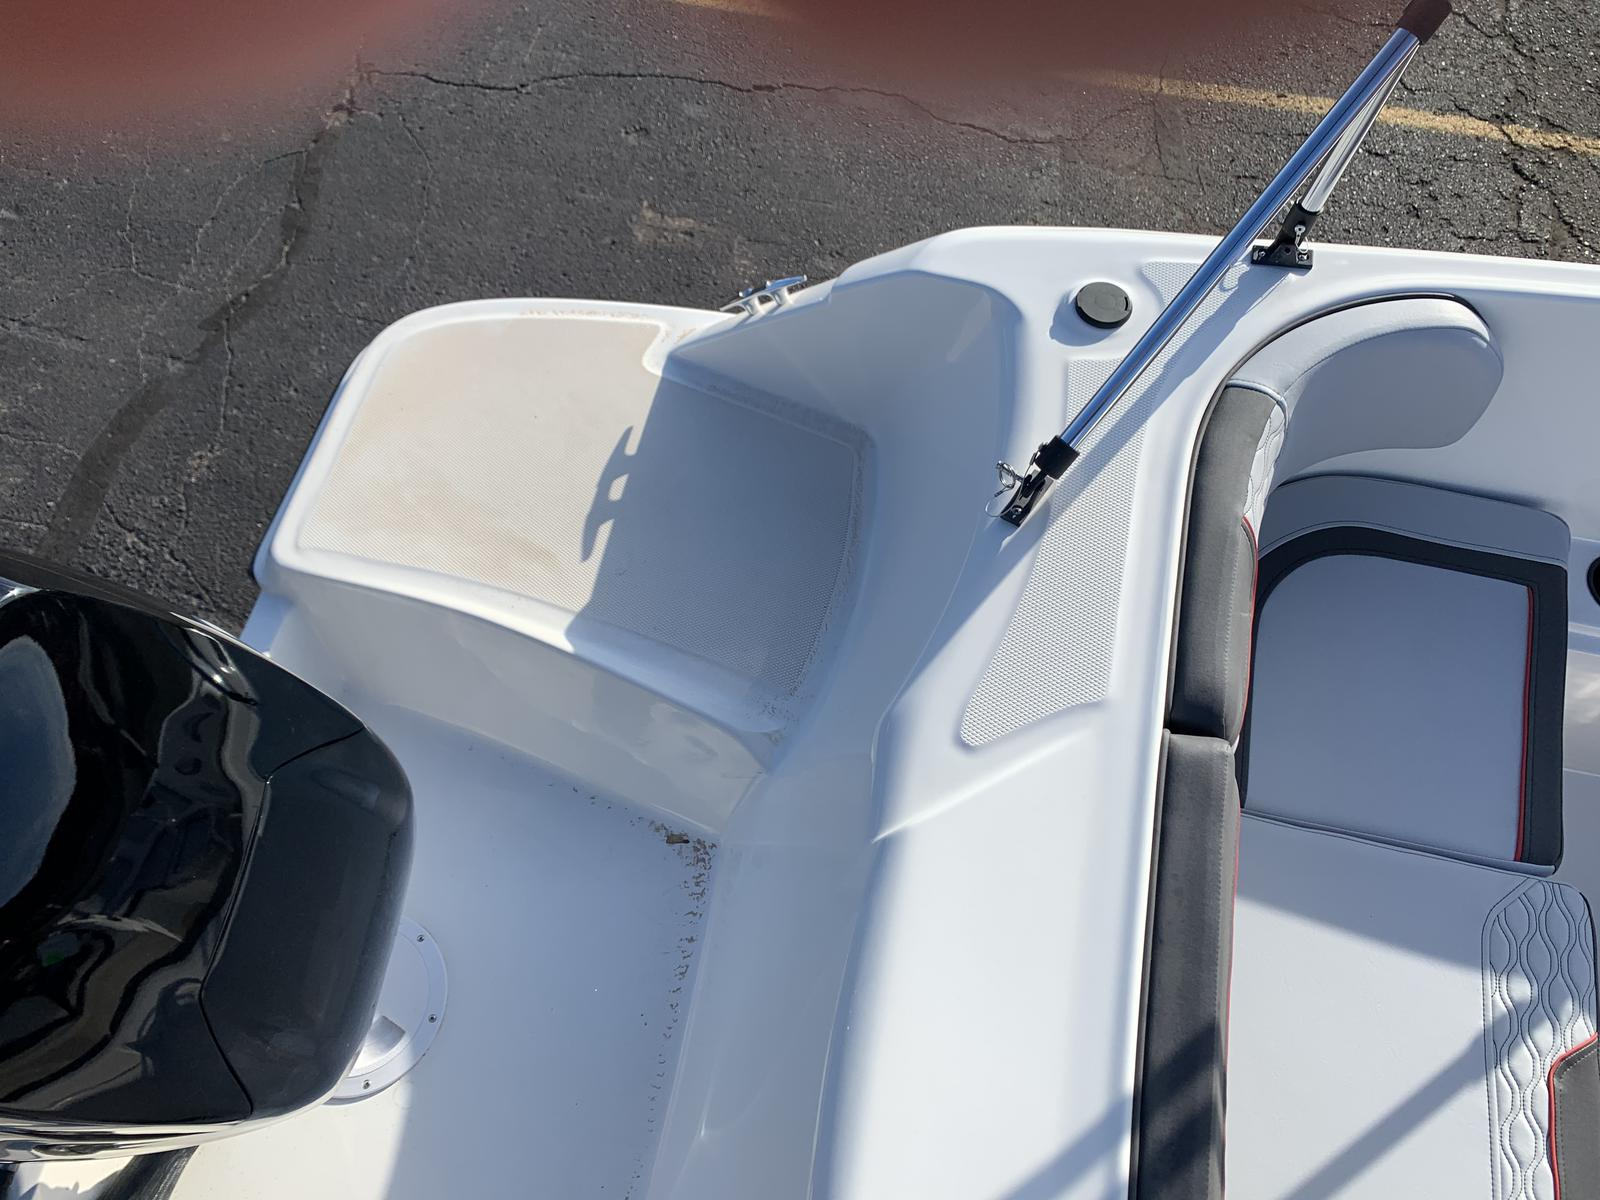 2021 Bayliner boat for sale, model of the boat is M-15 & Image # 7 of 11